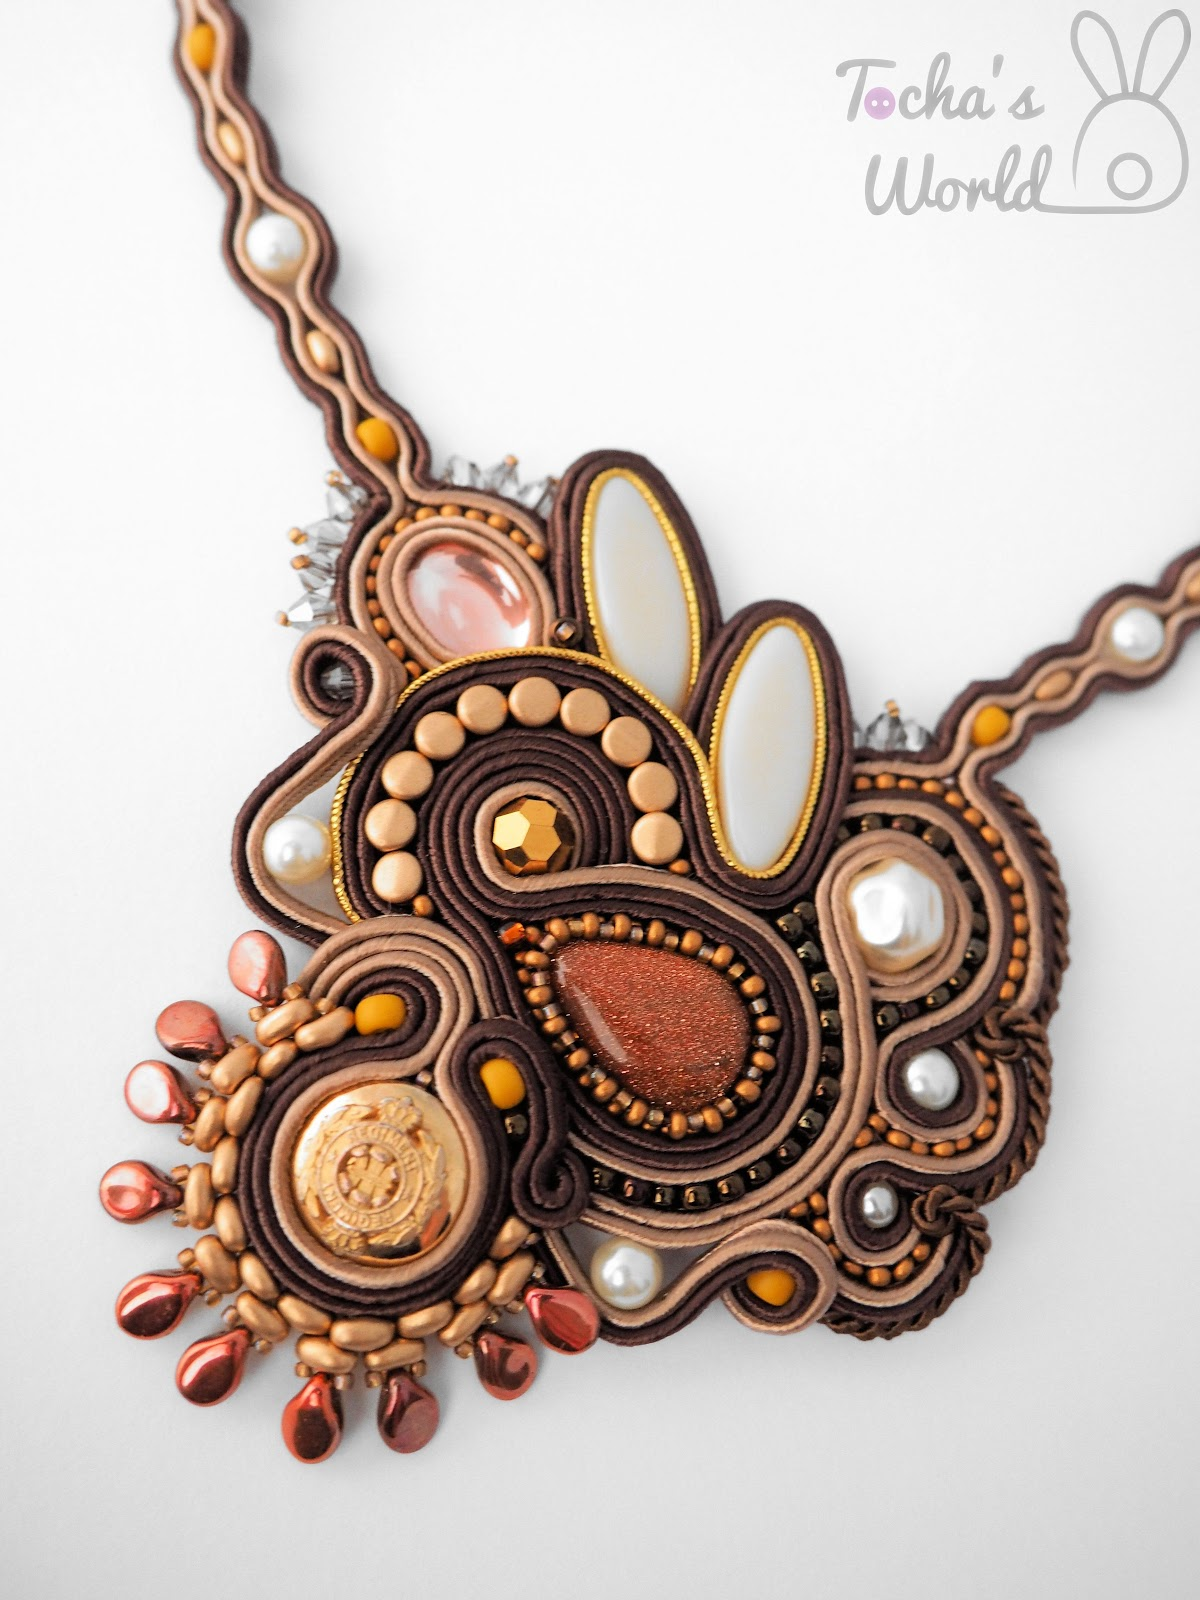 goldstone, regiment, button, vintage, ambition, soutache, sutasz, brown, gold, copper, energy, courage, vegan, ultrasuede, necklace, jewellery, statement, artificial pearls, Preciosa Ornela, glass beads,